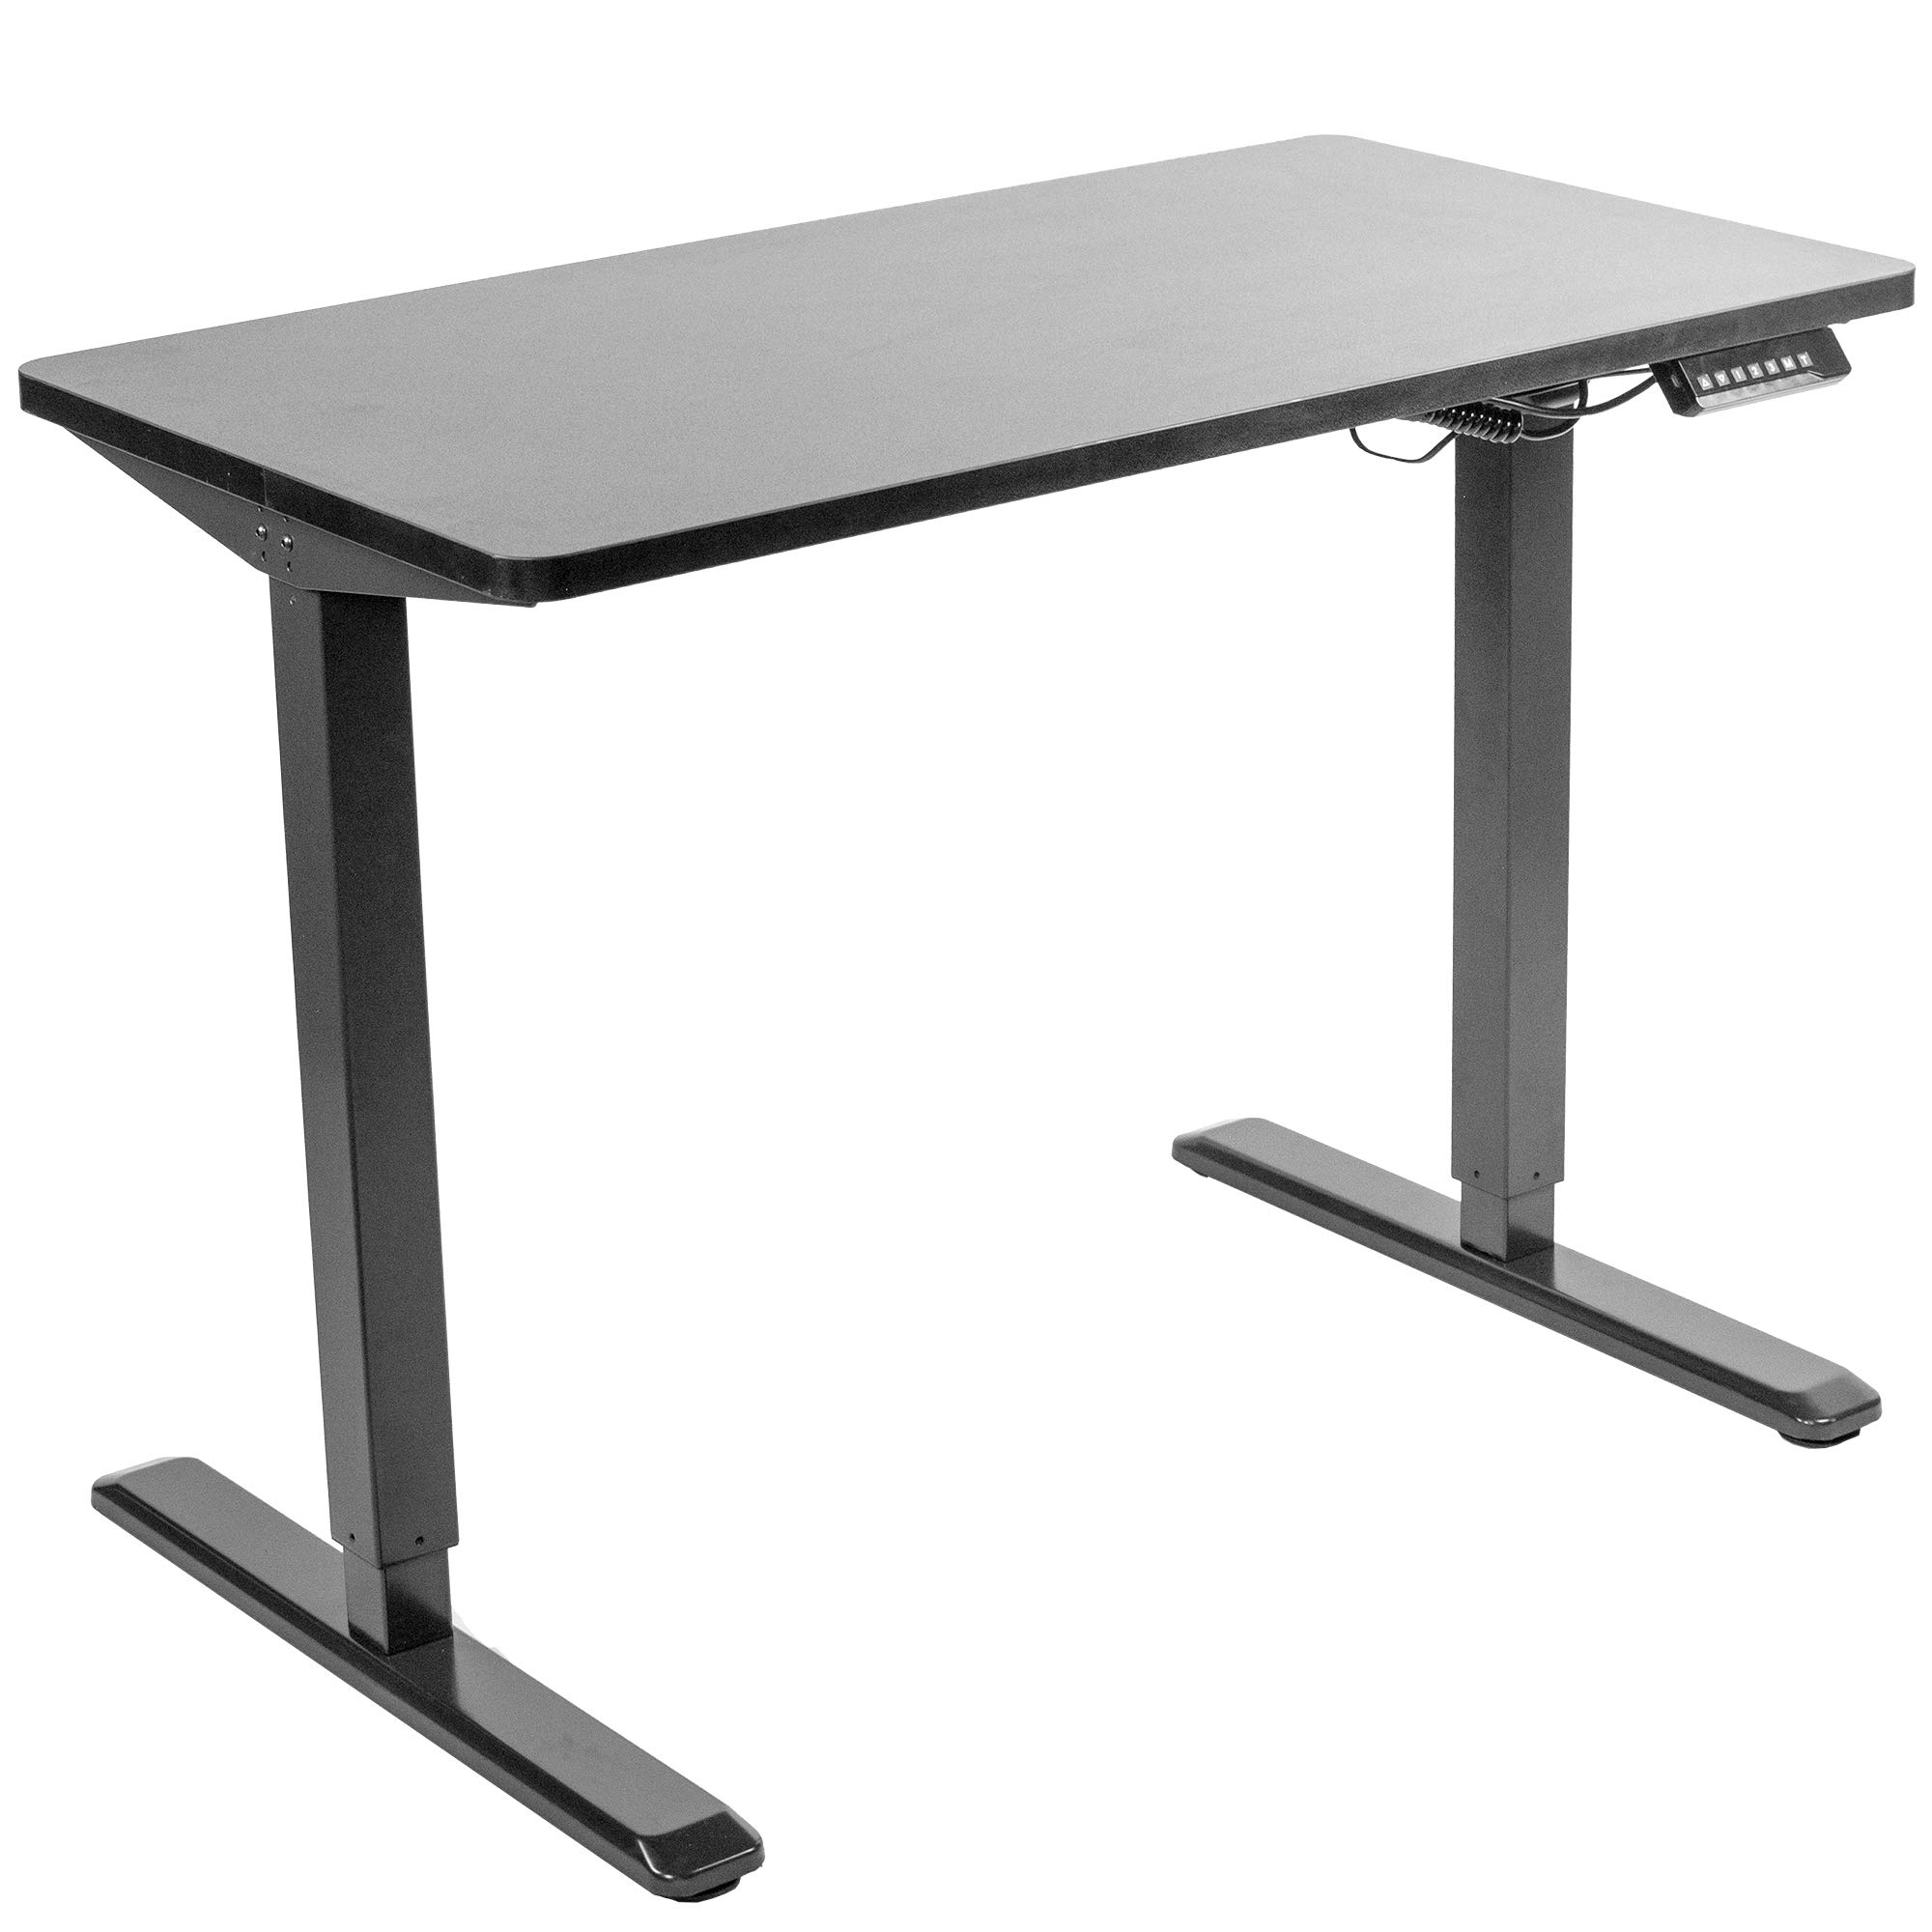 VIVO Electric 43 x 24 inch Stand Up Desk   Black Table Top, Black Frame, Height Adjustable Standing Workstation with Memory Preset Controller (DESK-KIT-1B4B) by VIVO